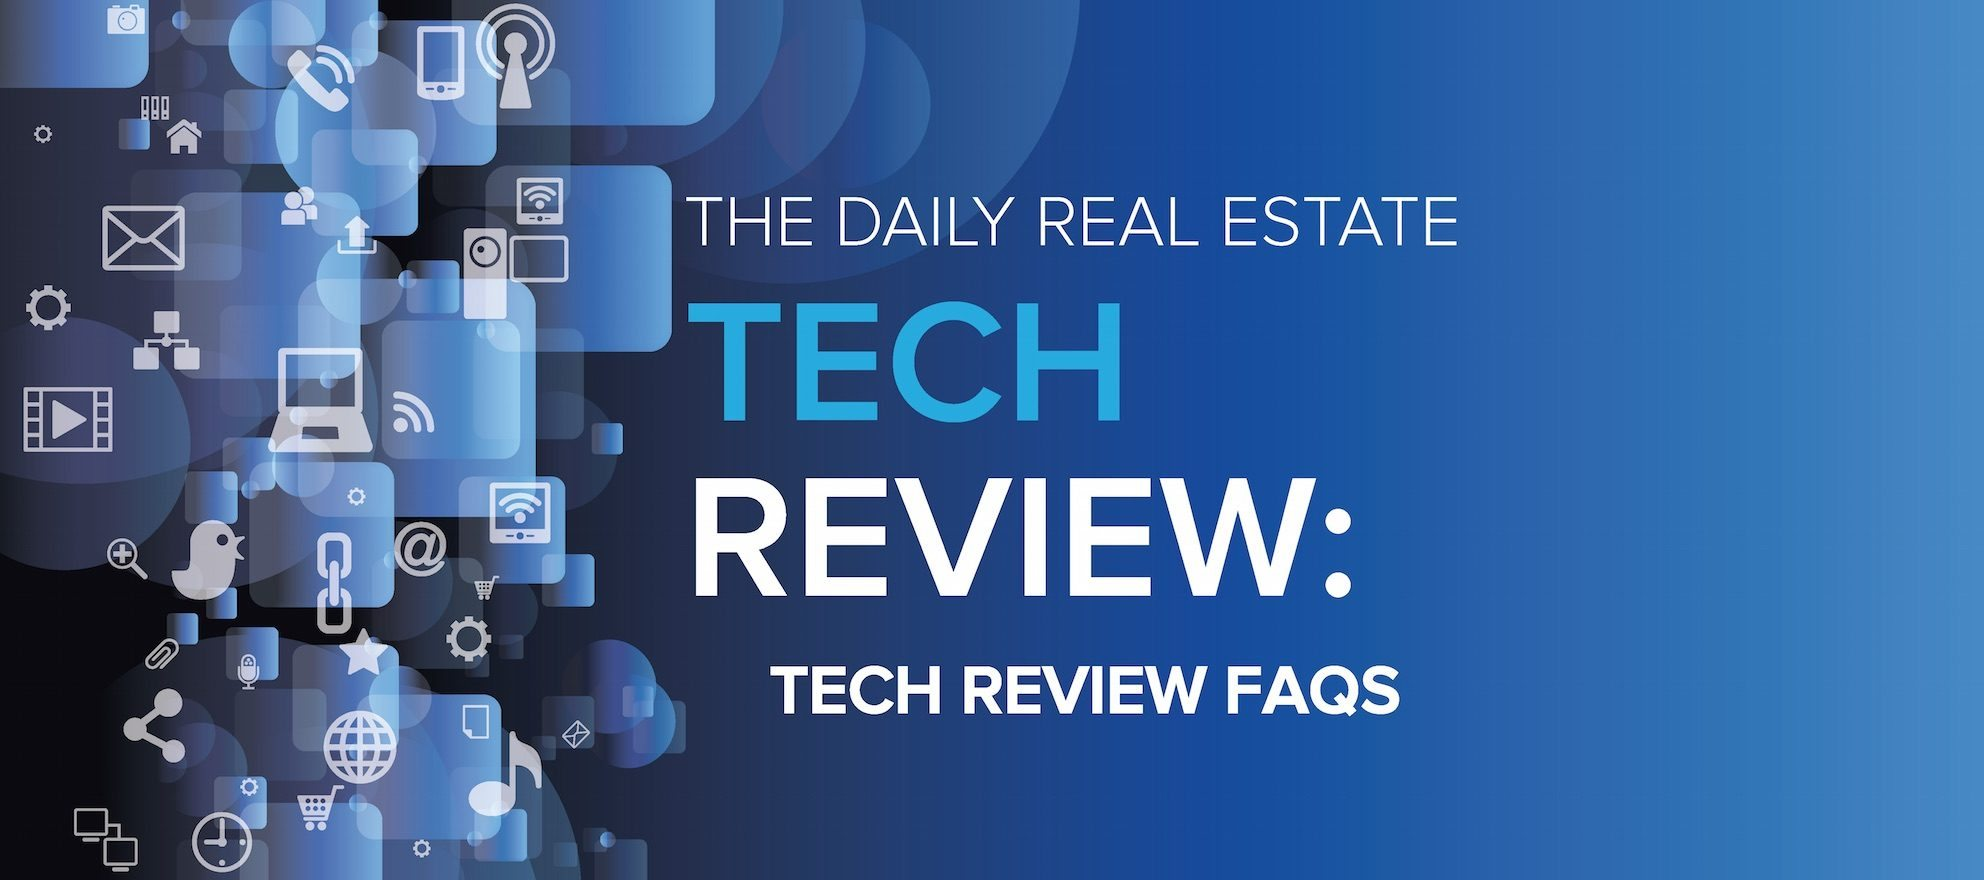 Tech review FAQs: coverage, corrections and CEOs